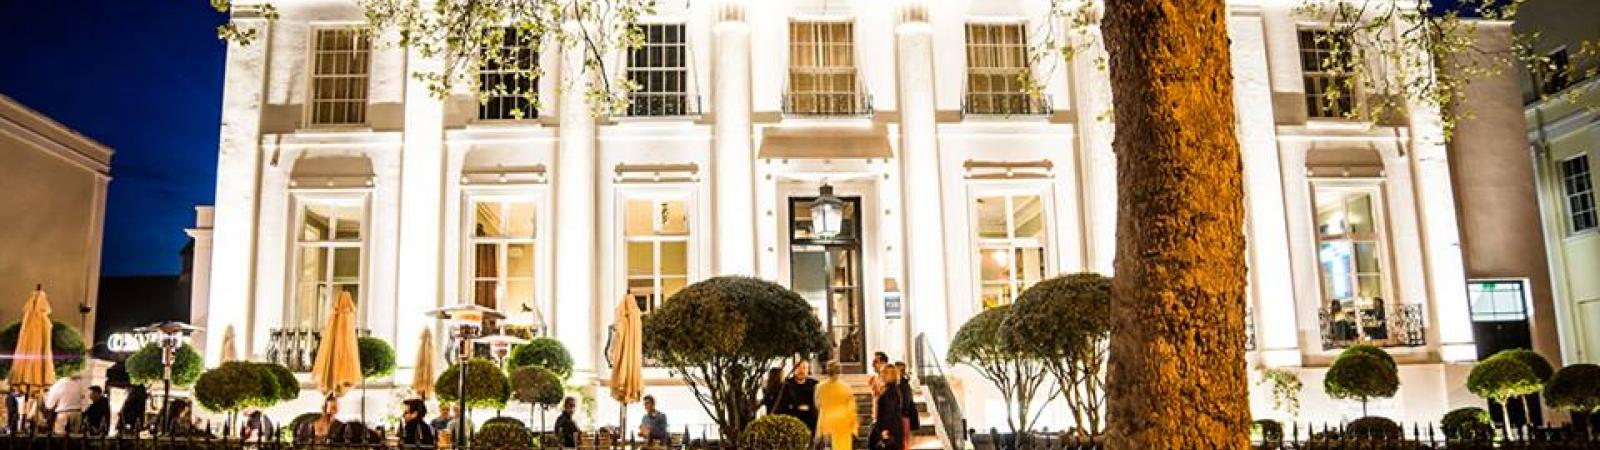 No. 131 HOTEL & RESTAURANT on Cheltenham Night Out | Promoting Cheltenham's nightlife for a great night out in Cheltenham.